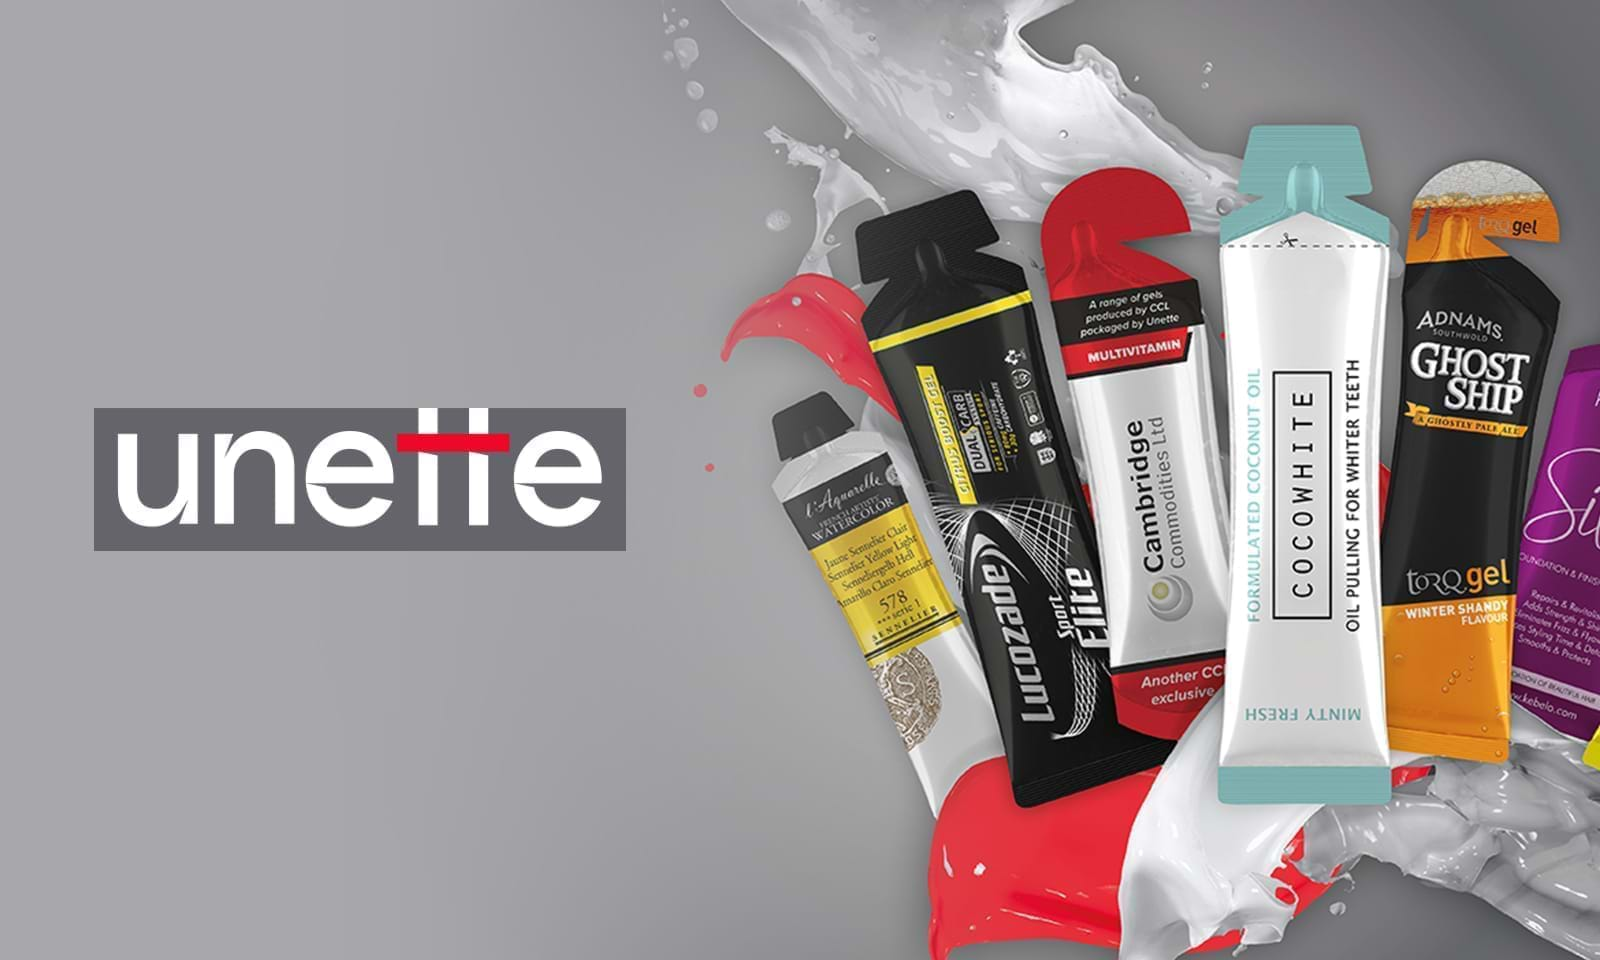 Unette | taking a new beauty product to market